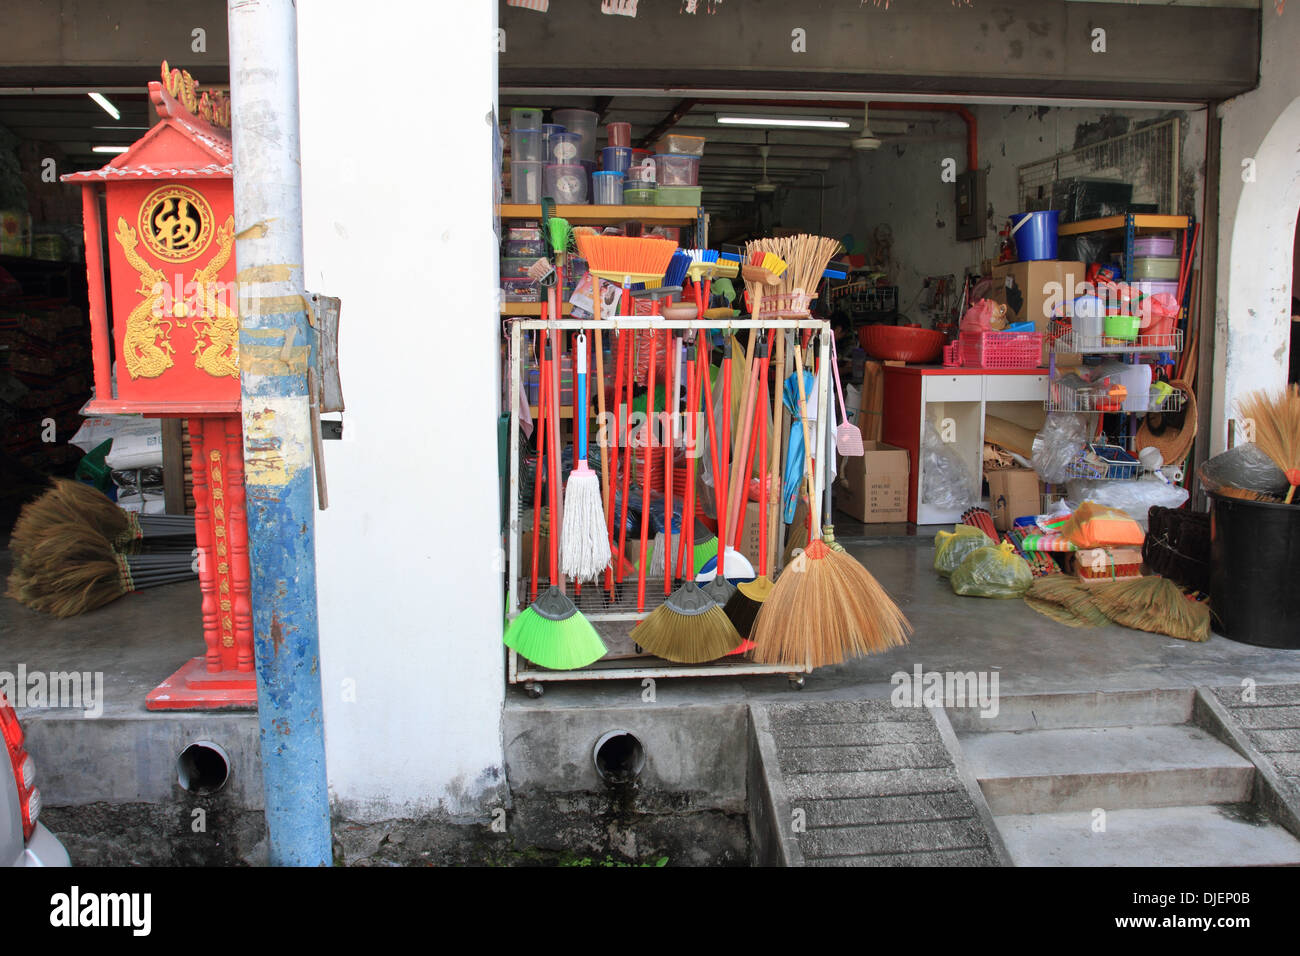 Chinese altar stockfotos chinese altar bilder alamy for Traditionelles chinesisches haus hanoi